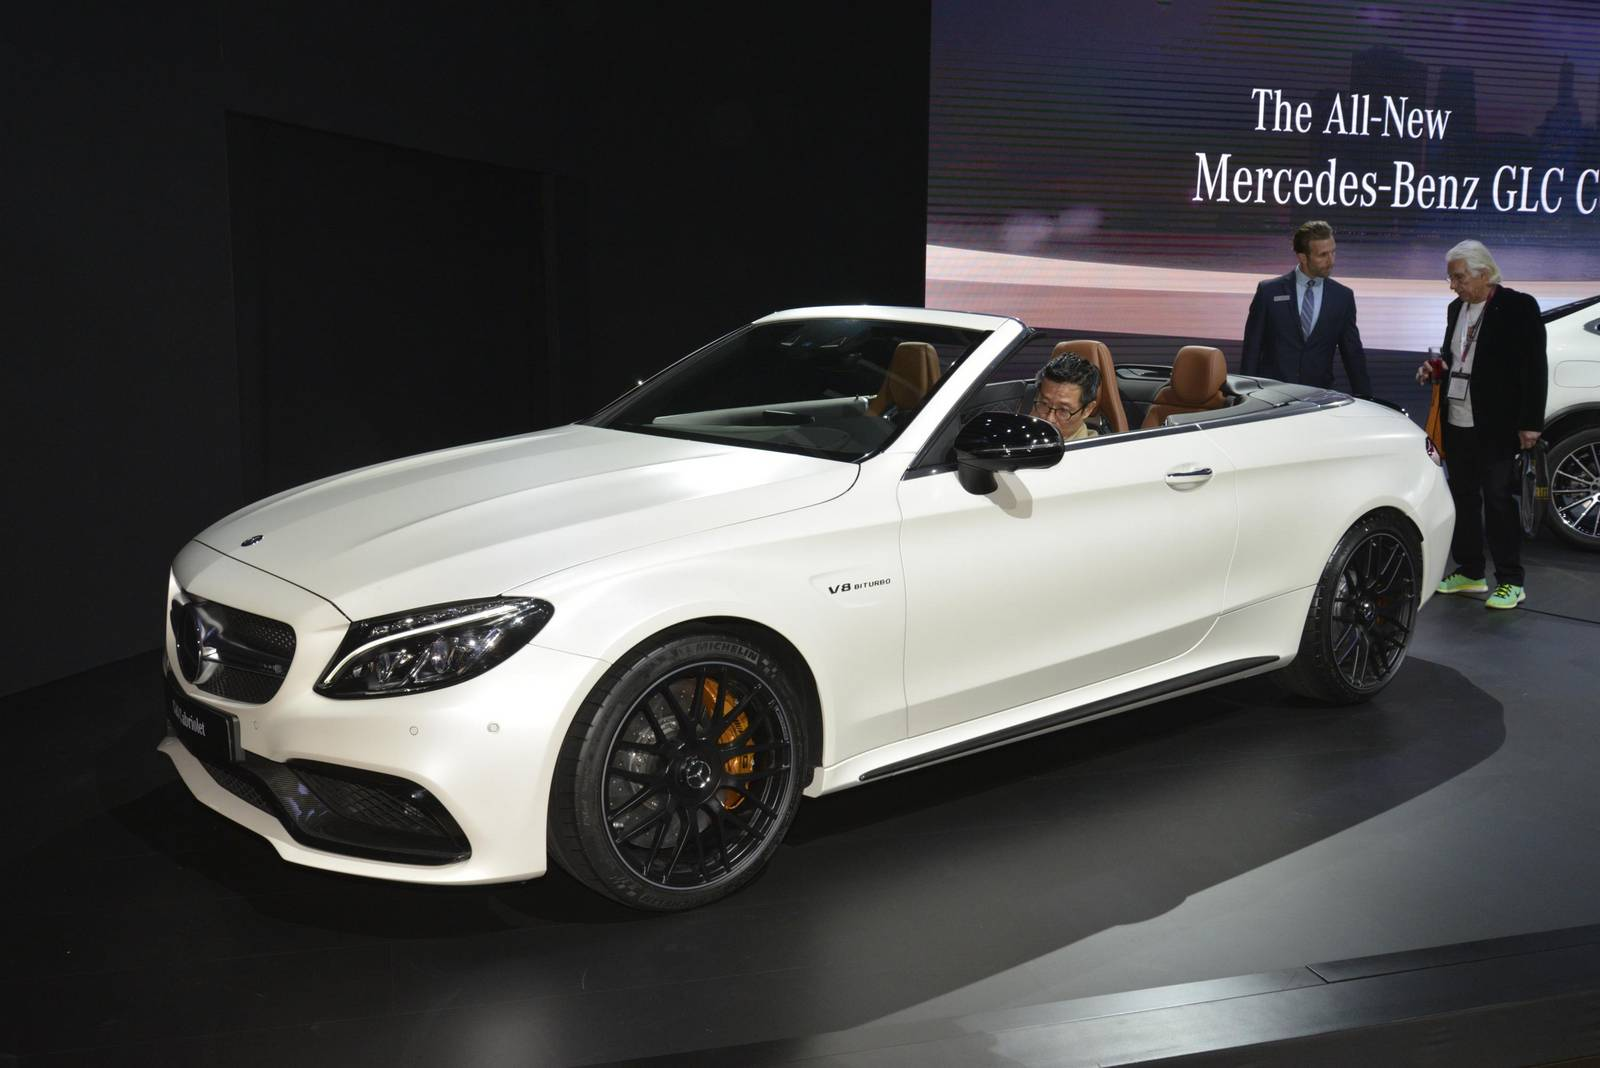 2017 C63 Amg Coupe Price >> New York 2016: Mercedes-AMG C 63 Cabriolet - GTspirit